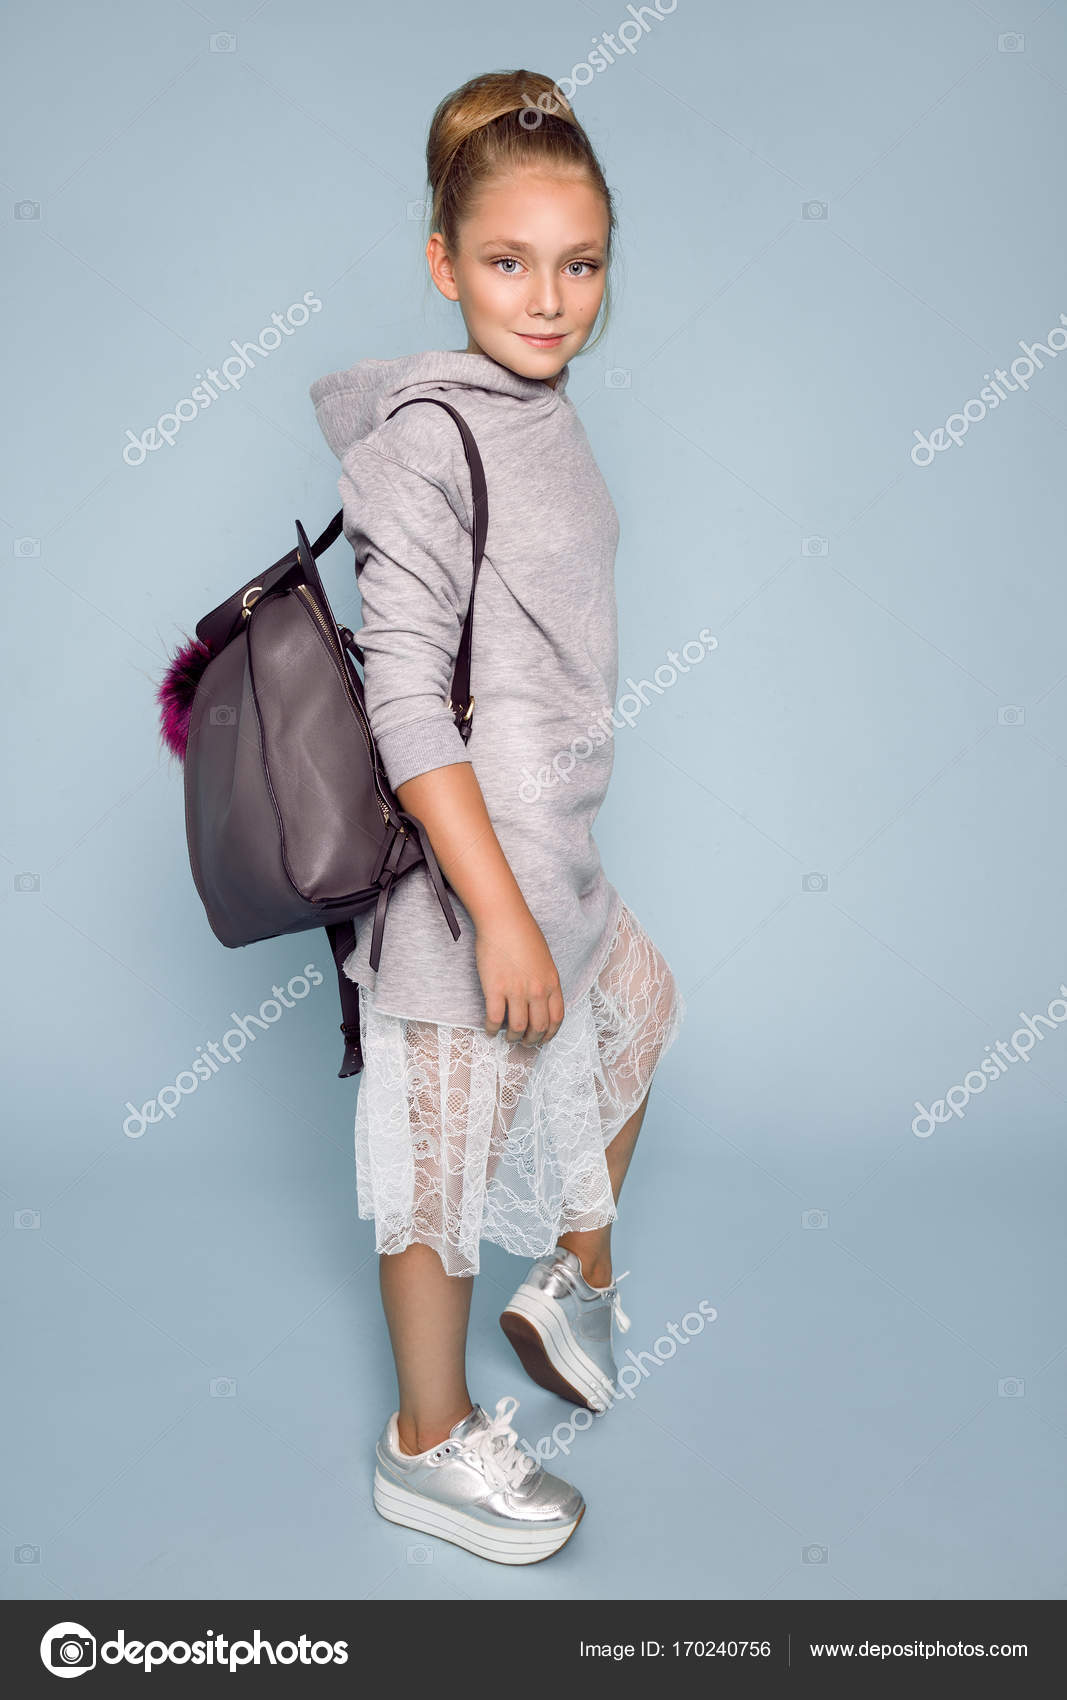 c81ea8968739 Cute little girl dressed in school clothes and school backpack standing on  blue background– stock image